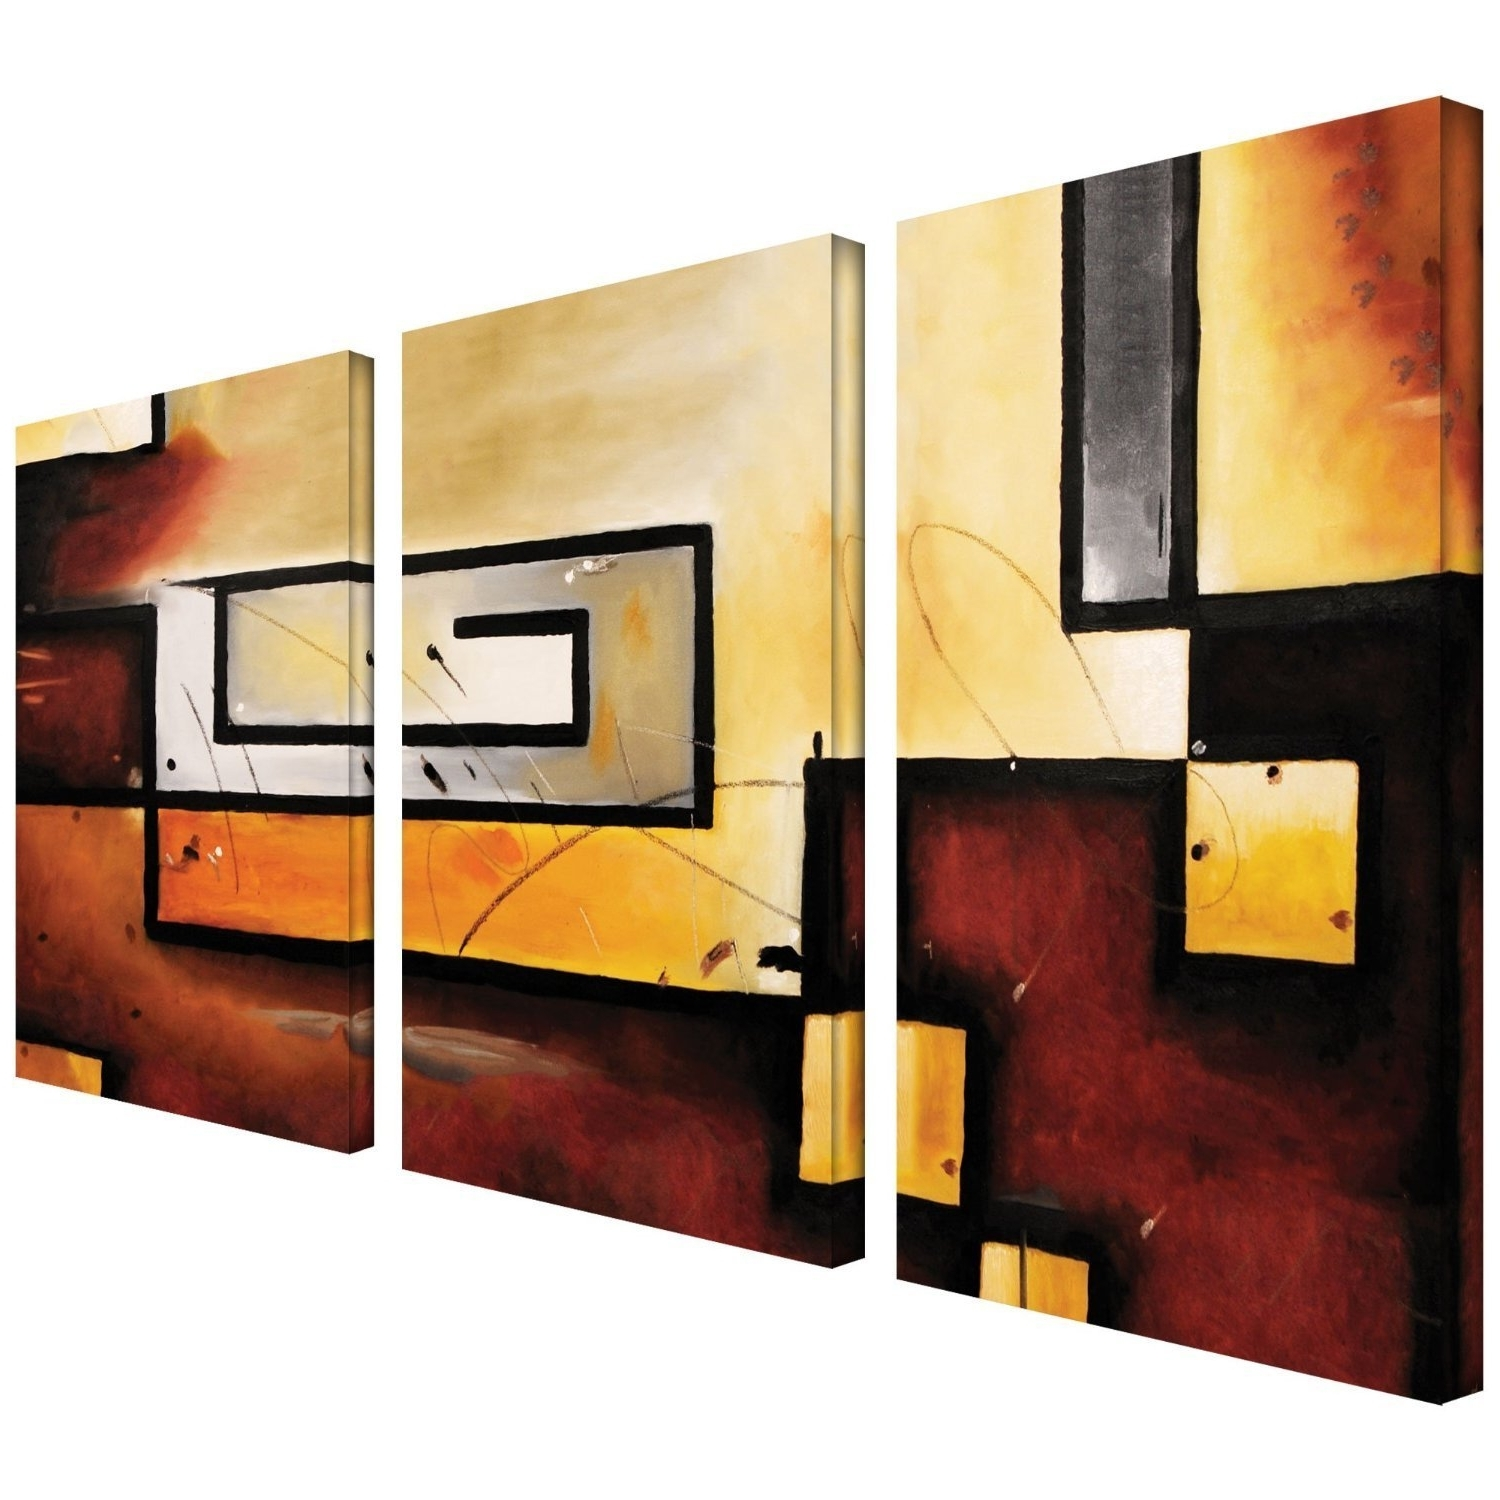 Image Gallery of Abstract Canvas Wall Art Iii (View 15 of 15 Photos)